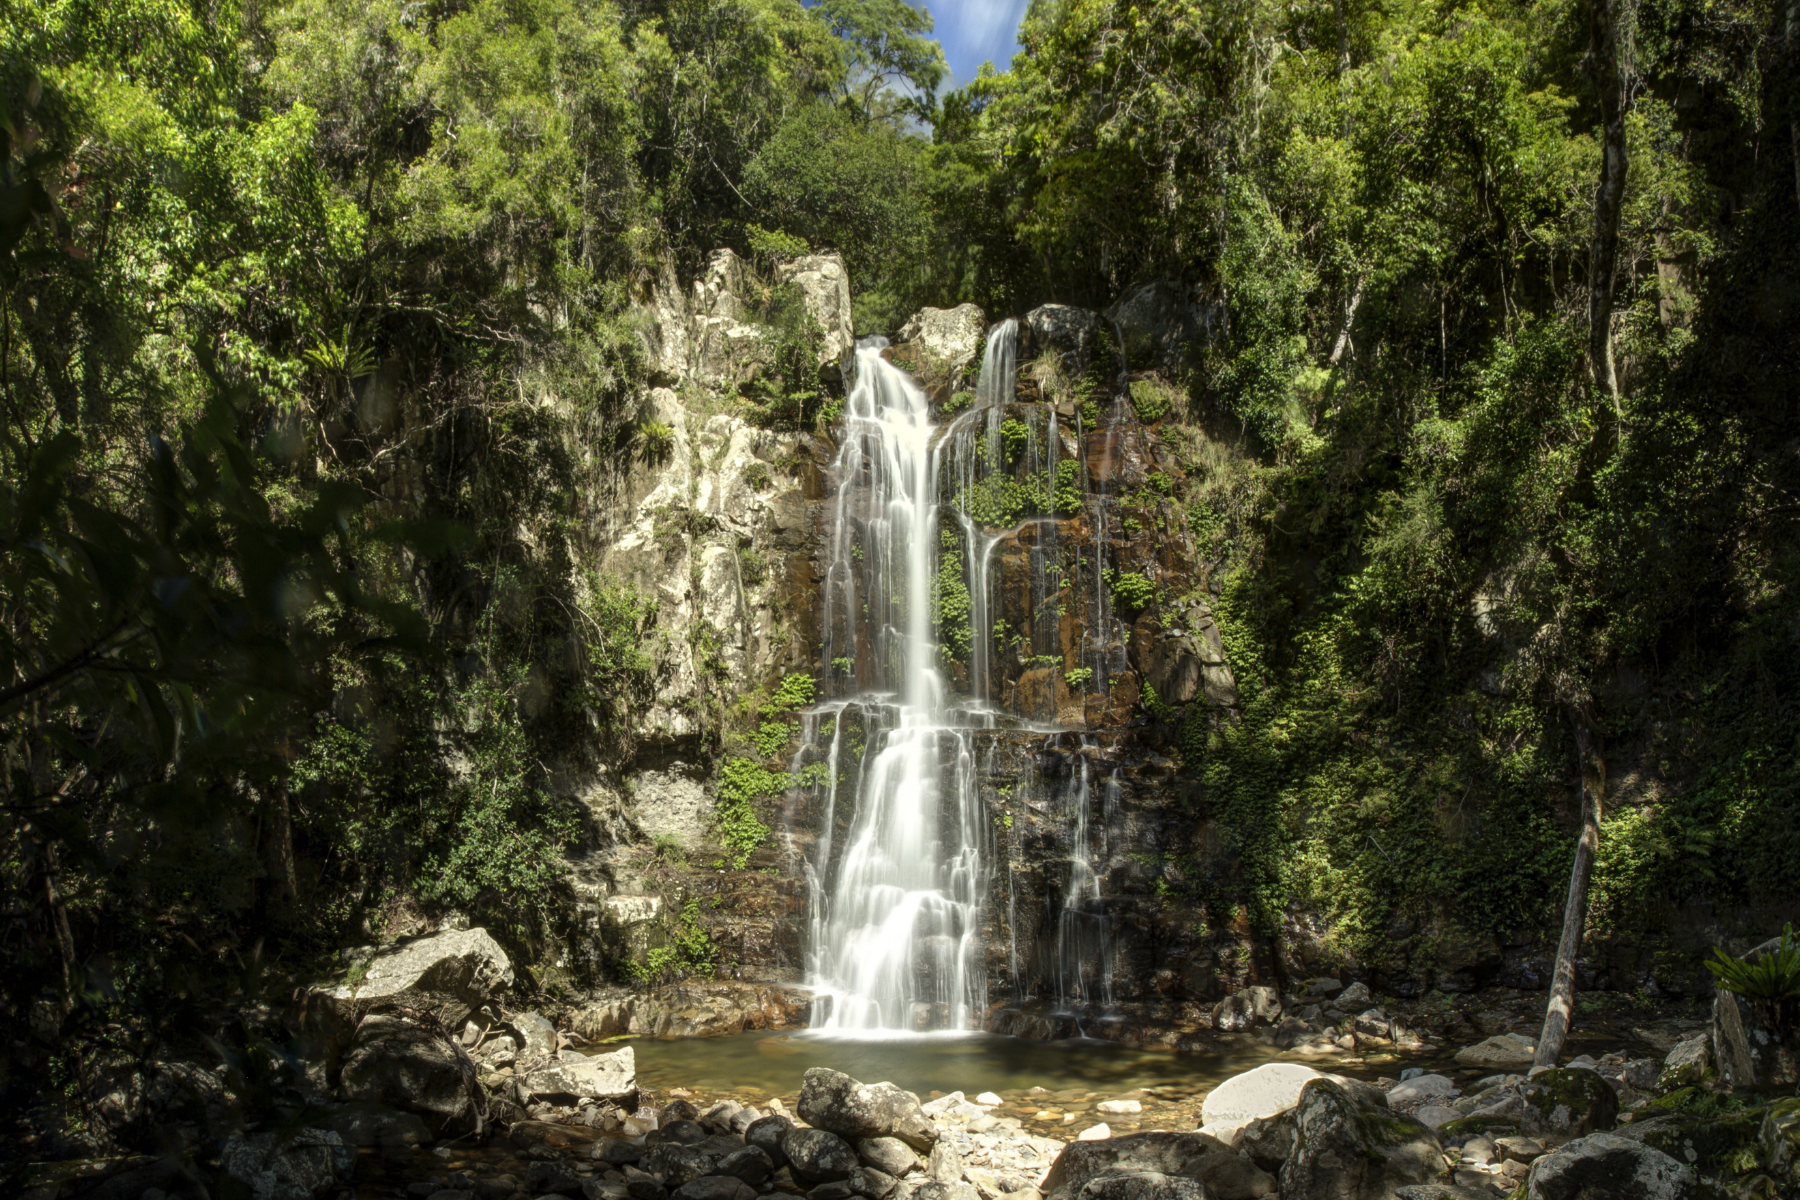 Image of Upper and Lower Minnamurra Falls at Budderoo National Park in NSW